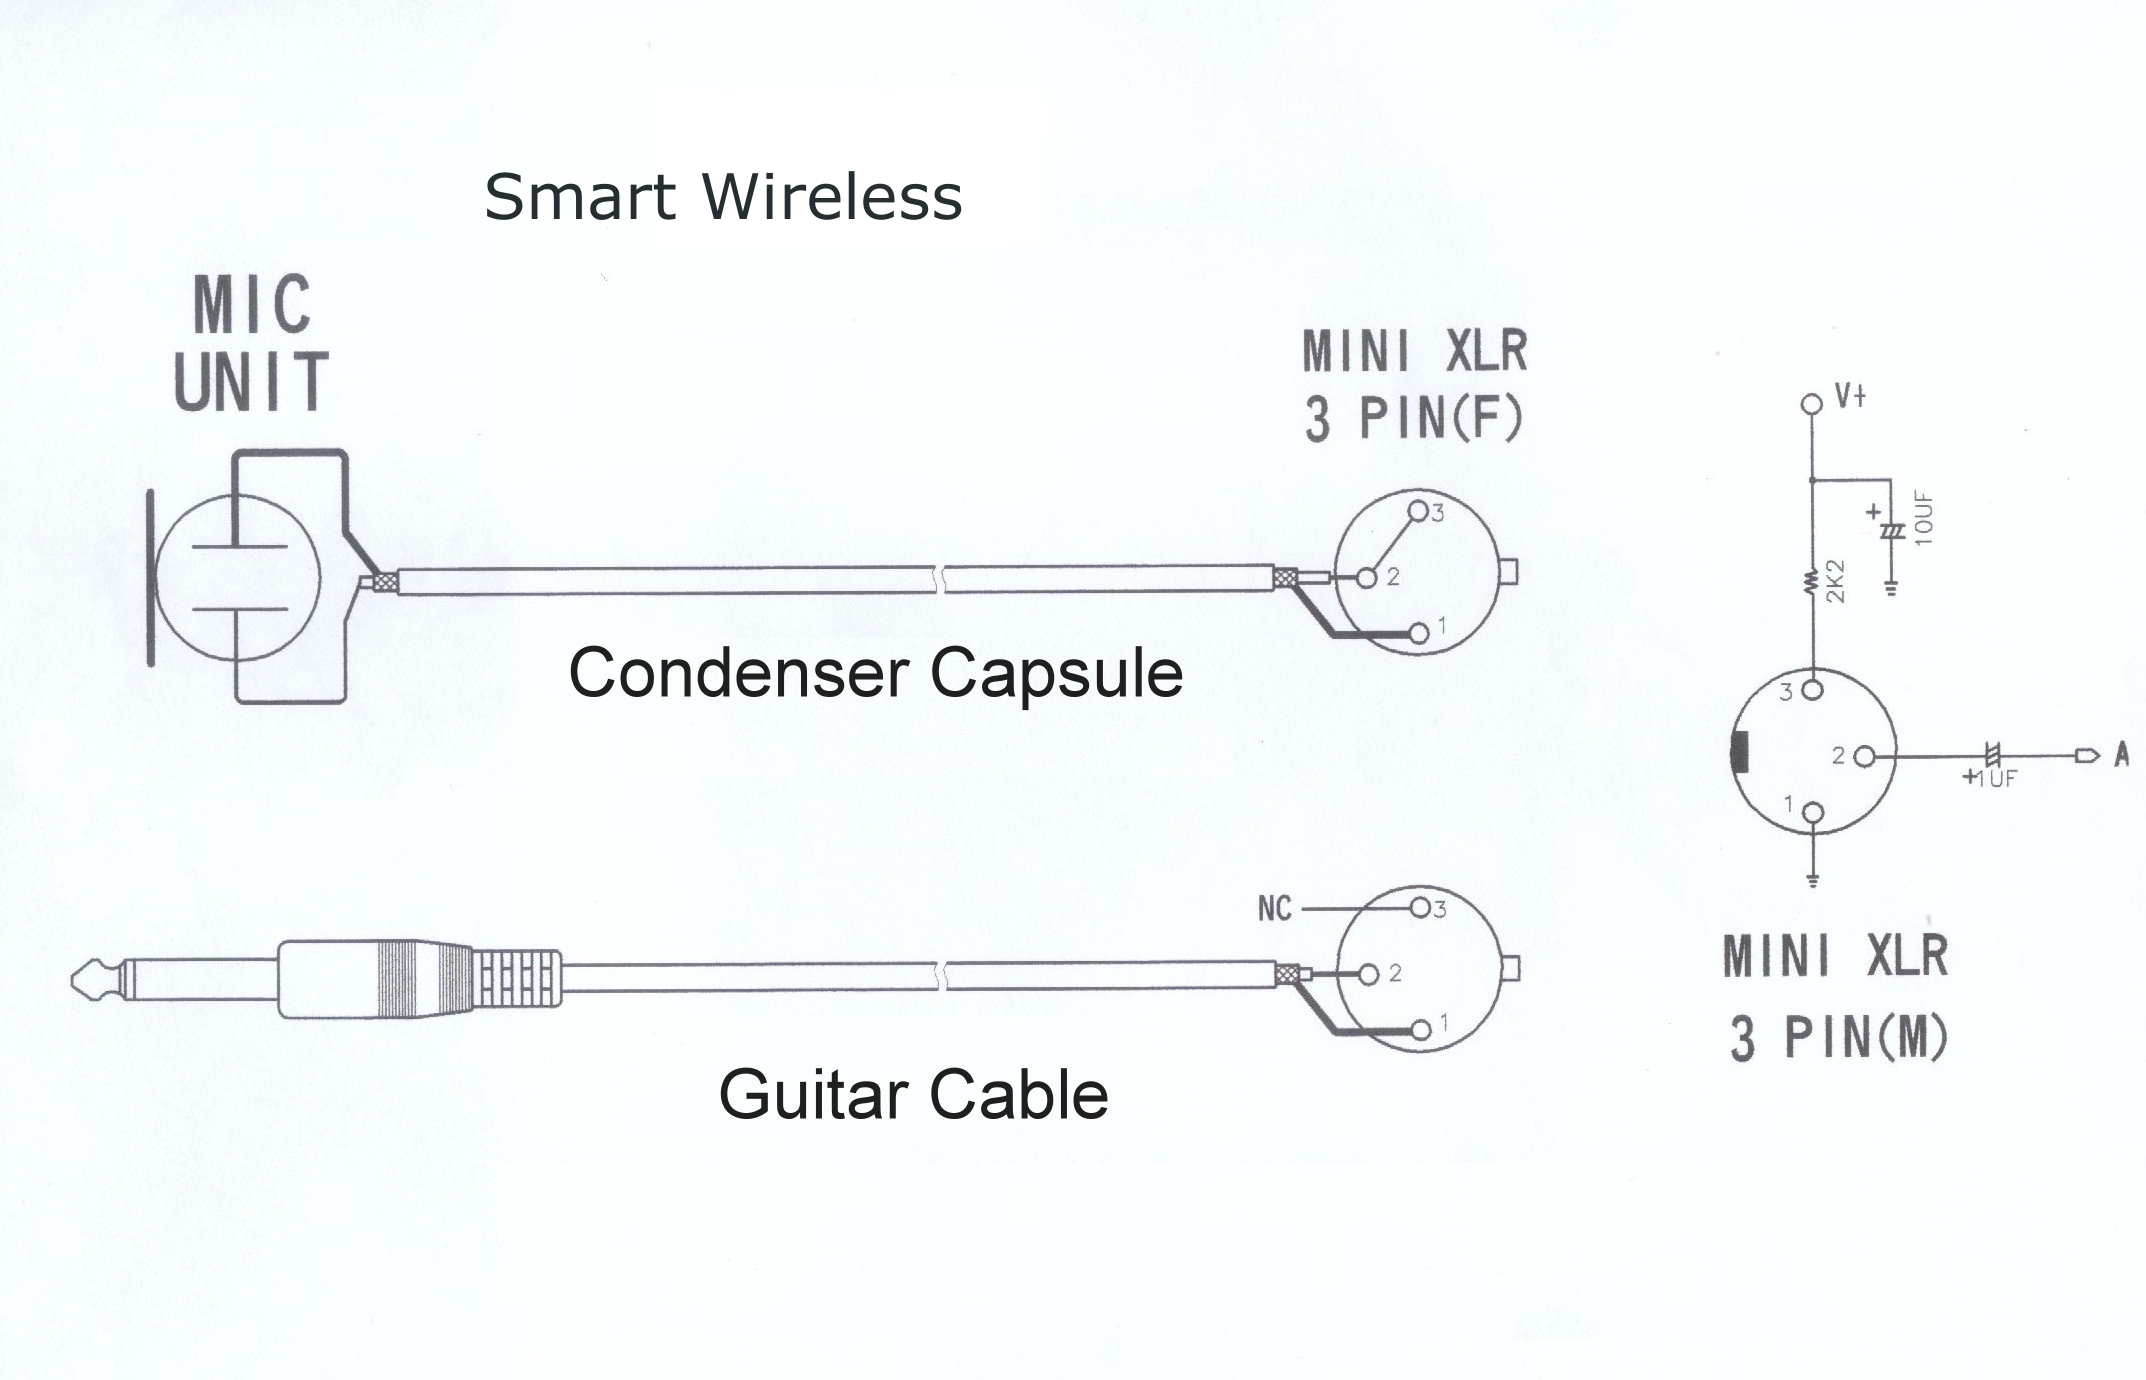 xlr balanced phone unbalanced jpg mic cable diagram \